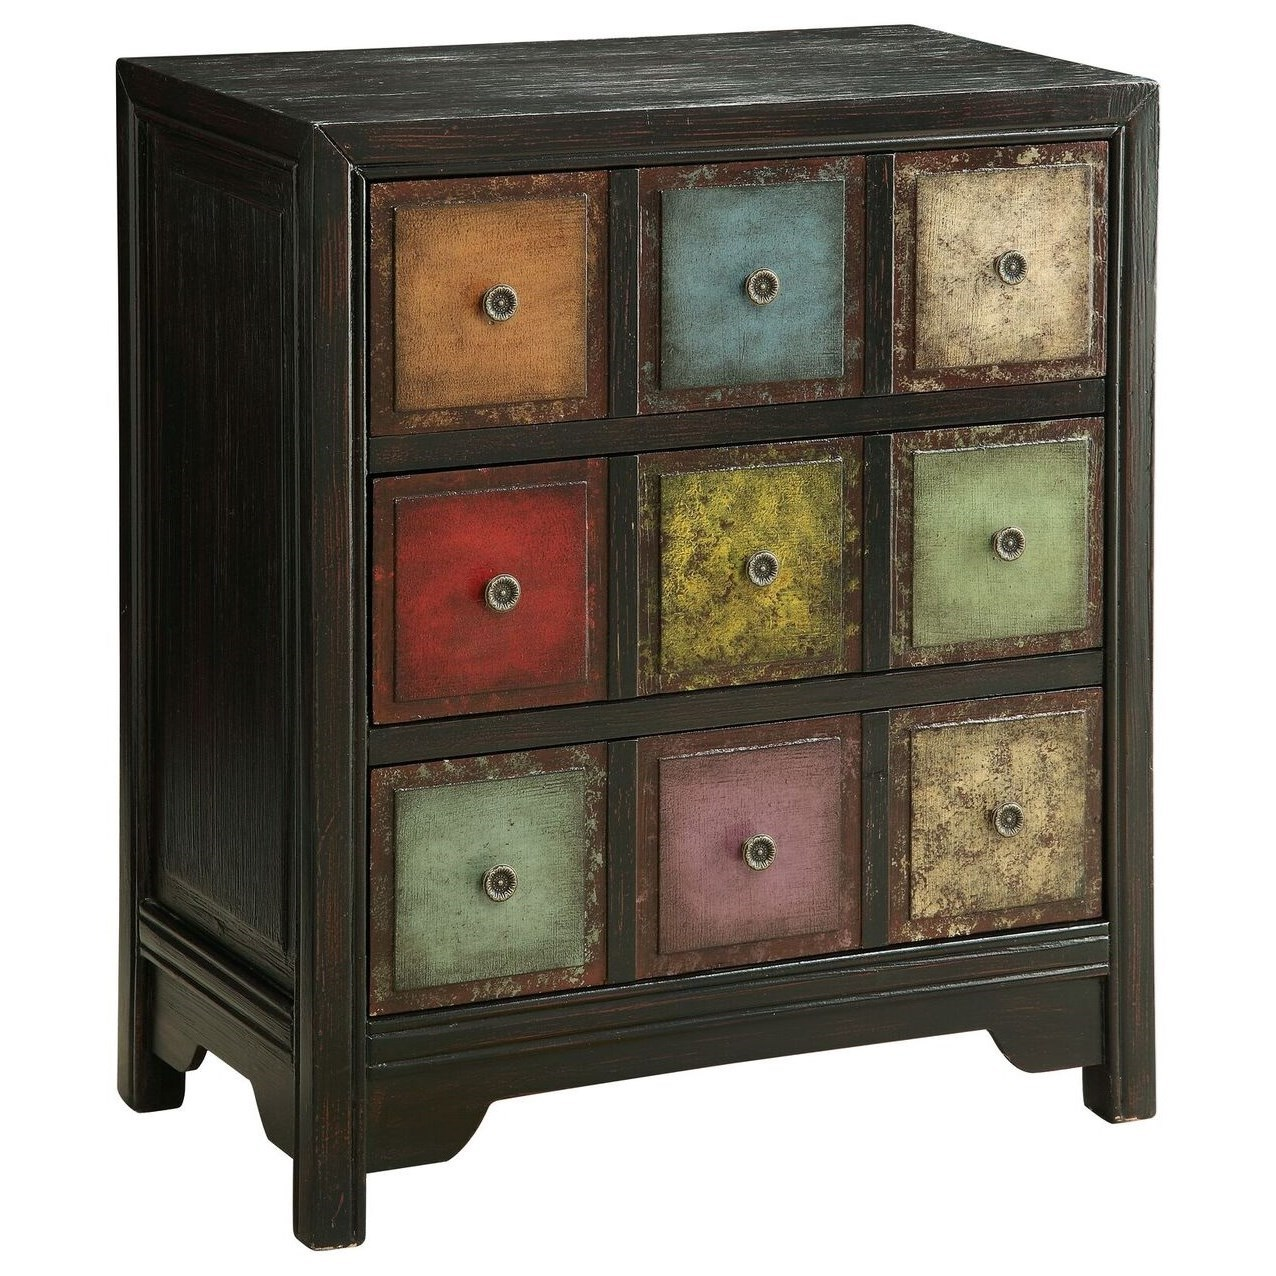 C2C Accents 3-Drawer Chest by C2C at Walker's Furniture